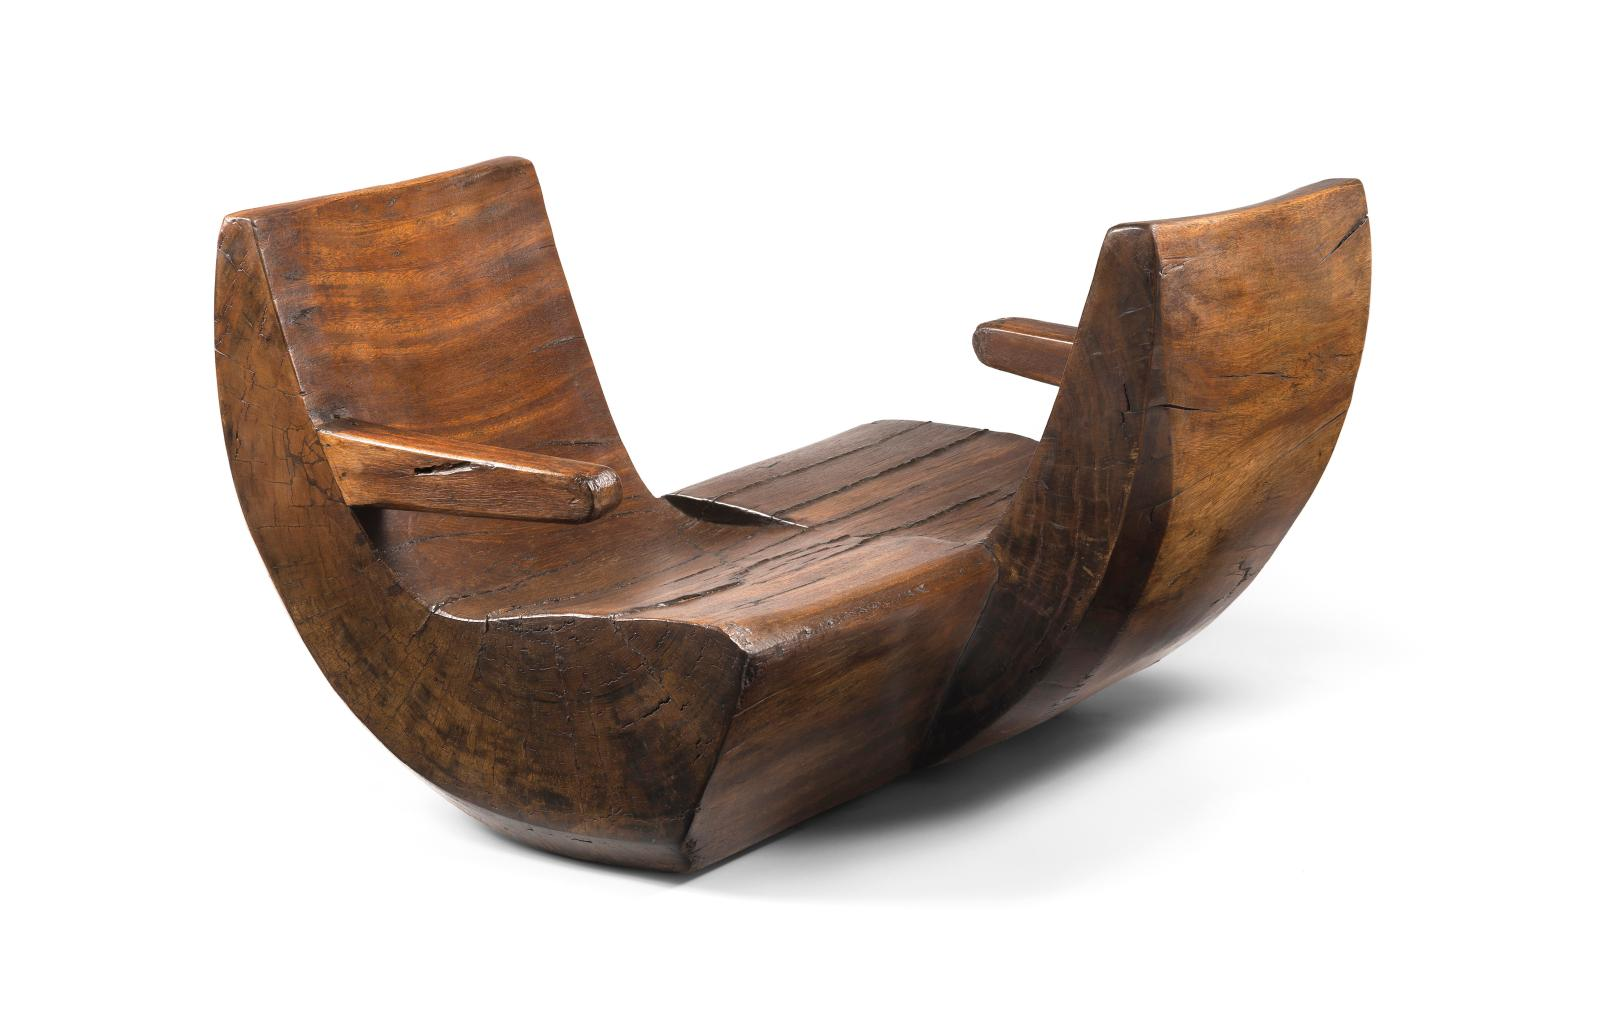 """Namoradeira"" chair in solid pequi, designed by Jose Zanine Caldas for his property in Joatinga, near Rio de Janeiro, in c. 1965."